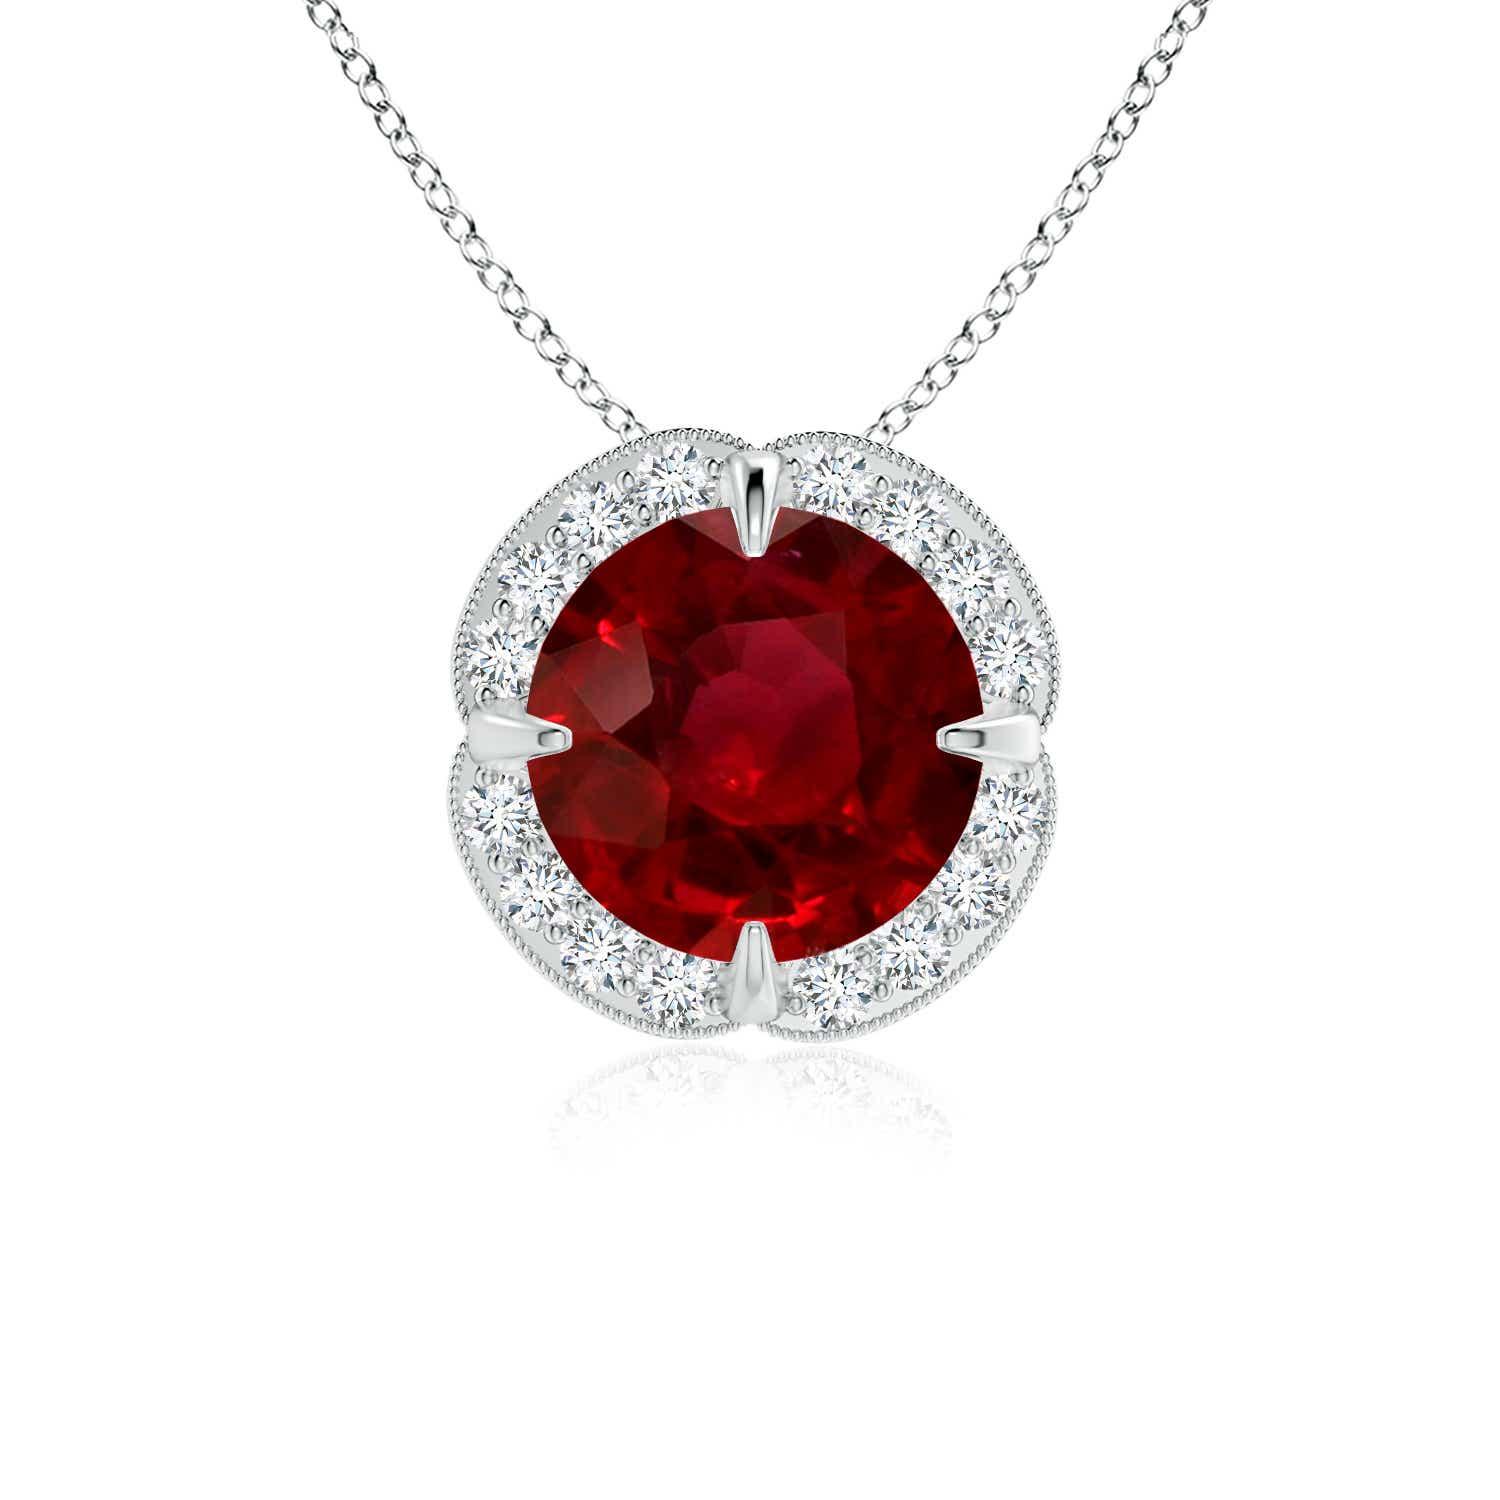 Ruby Clover Halo Necklace (GIA Certified Ruby) - Angara.com